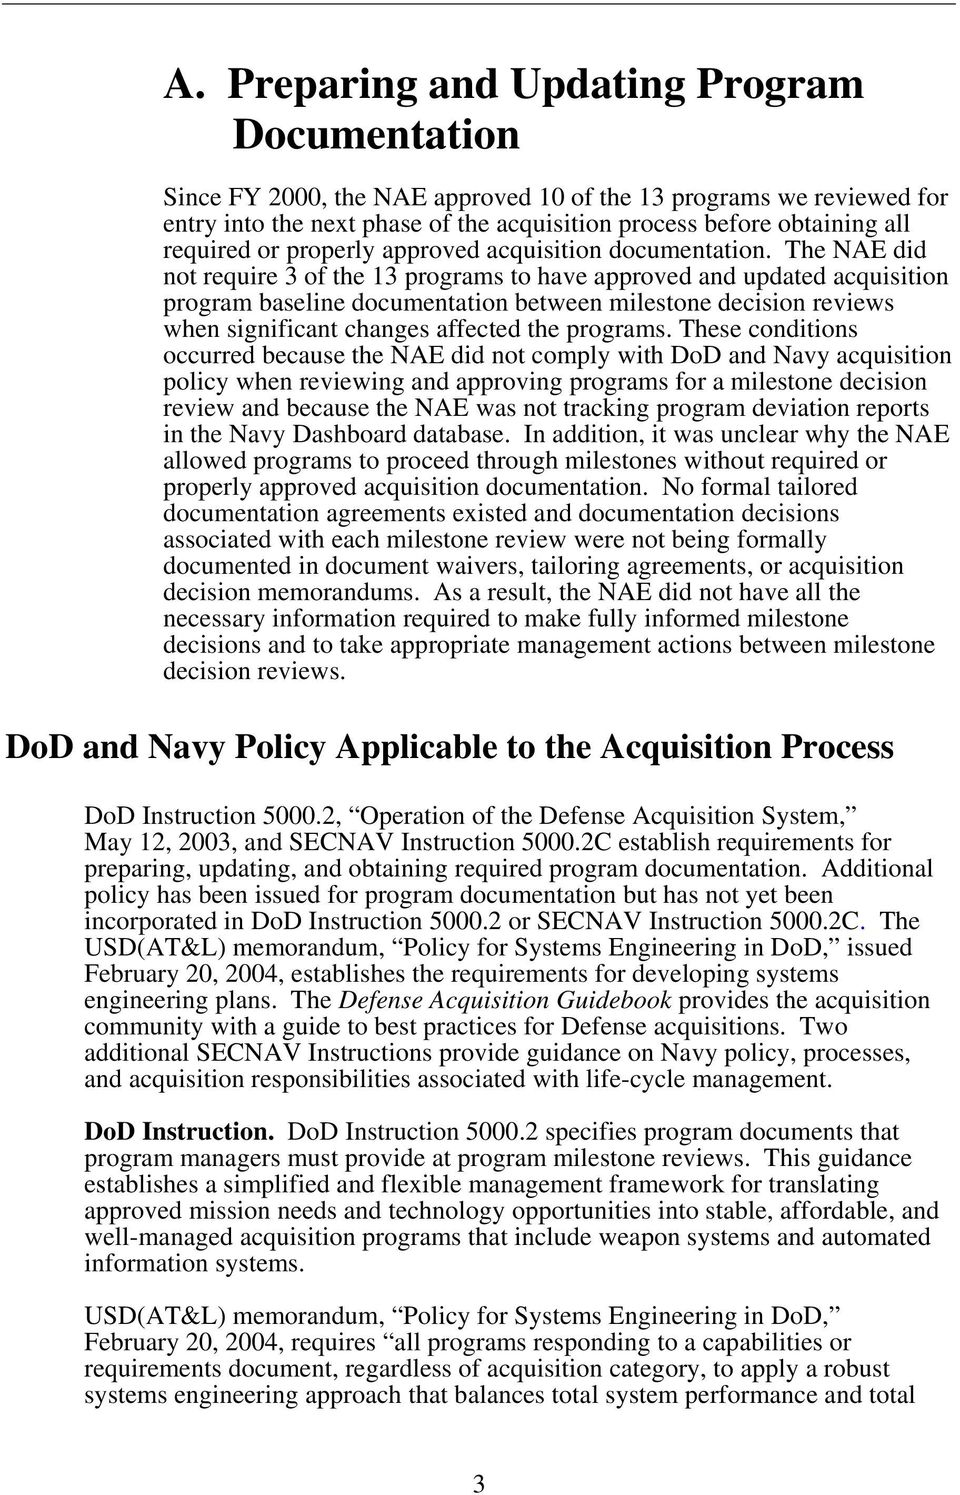 The NAE did not require 3 of the 13 programs to have approved and updated acquisition program baseline documentation between milestone decision reviews when significant changes affected the programs.